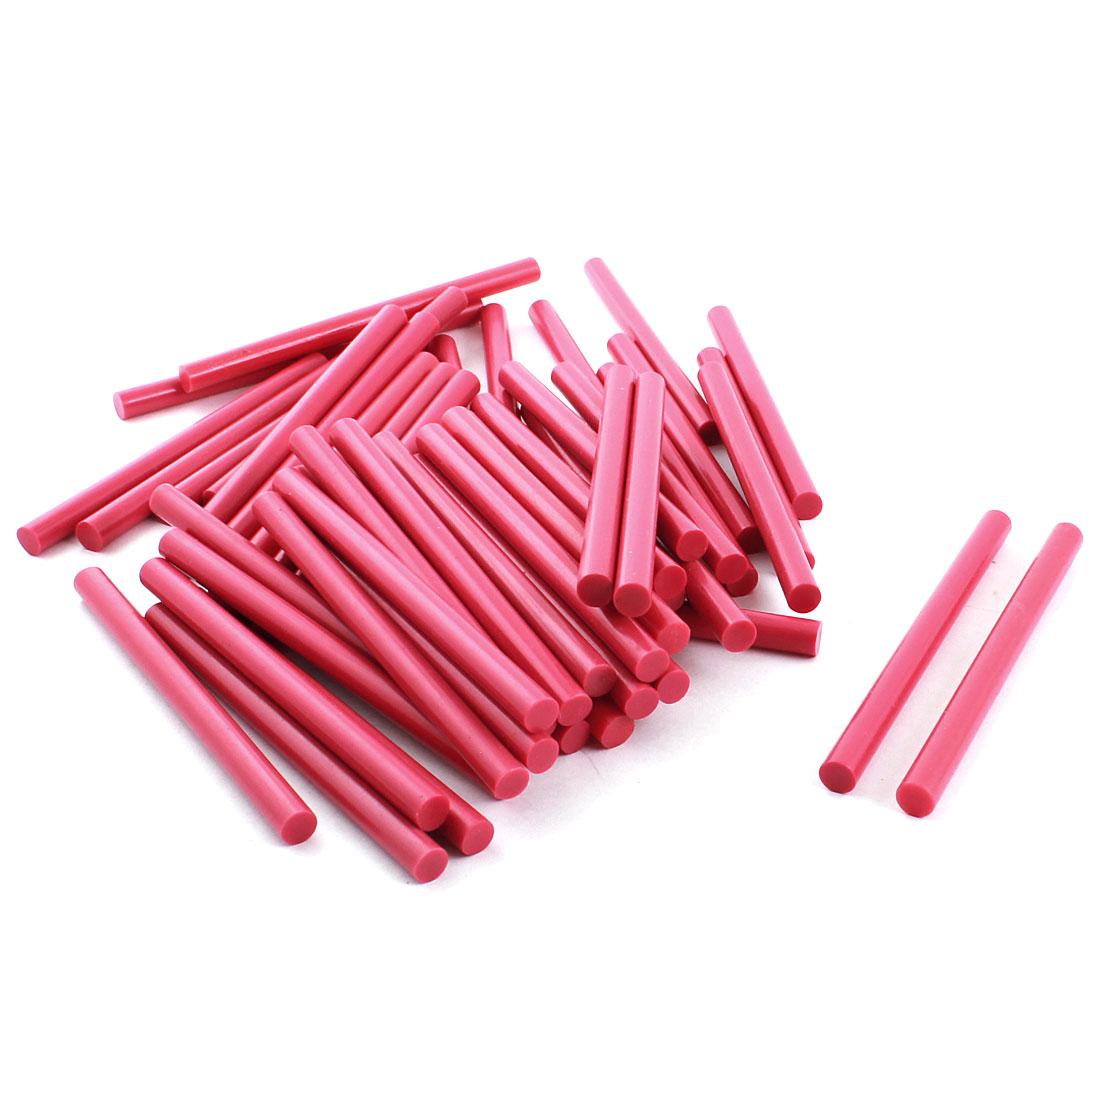 50pcs 7x100mm Fuchsia EVA Hot Melt Glue Gun Adhesive Sticks for Sealing Package